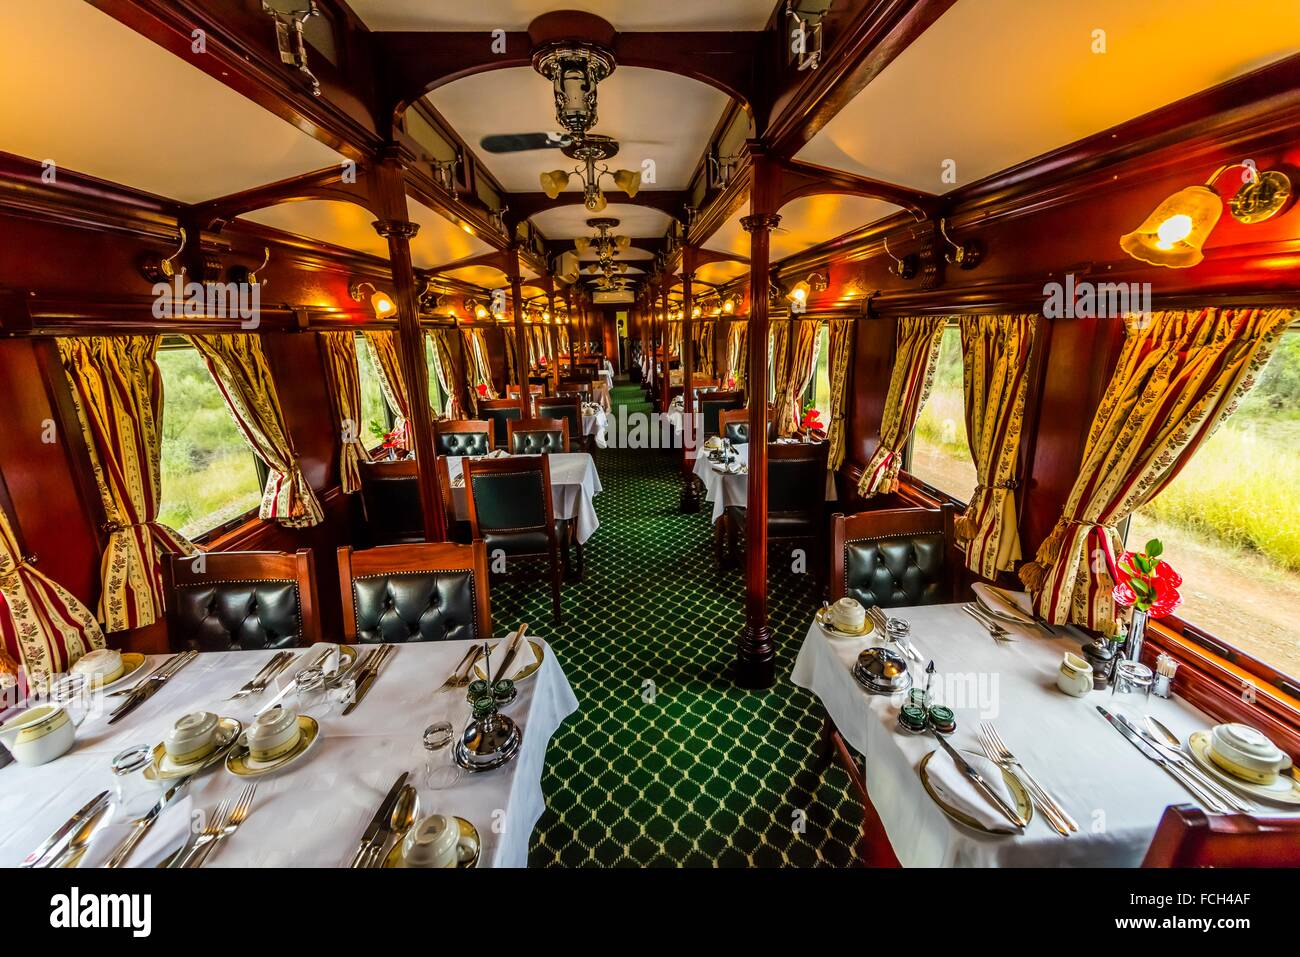 a pillared pre 1940s dining car on the luxury rovos rail train stock photo royalty free image. Black Bedroom Furniture Sets. Home Design Ideas